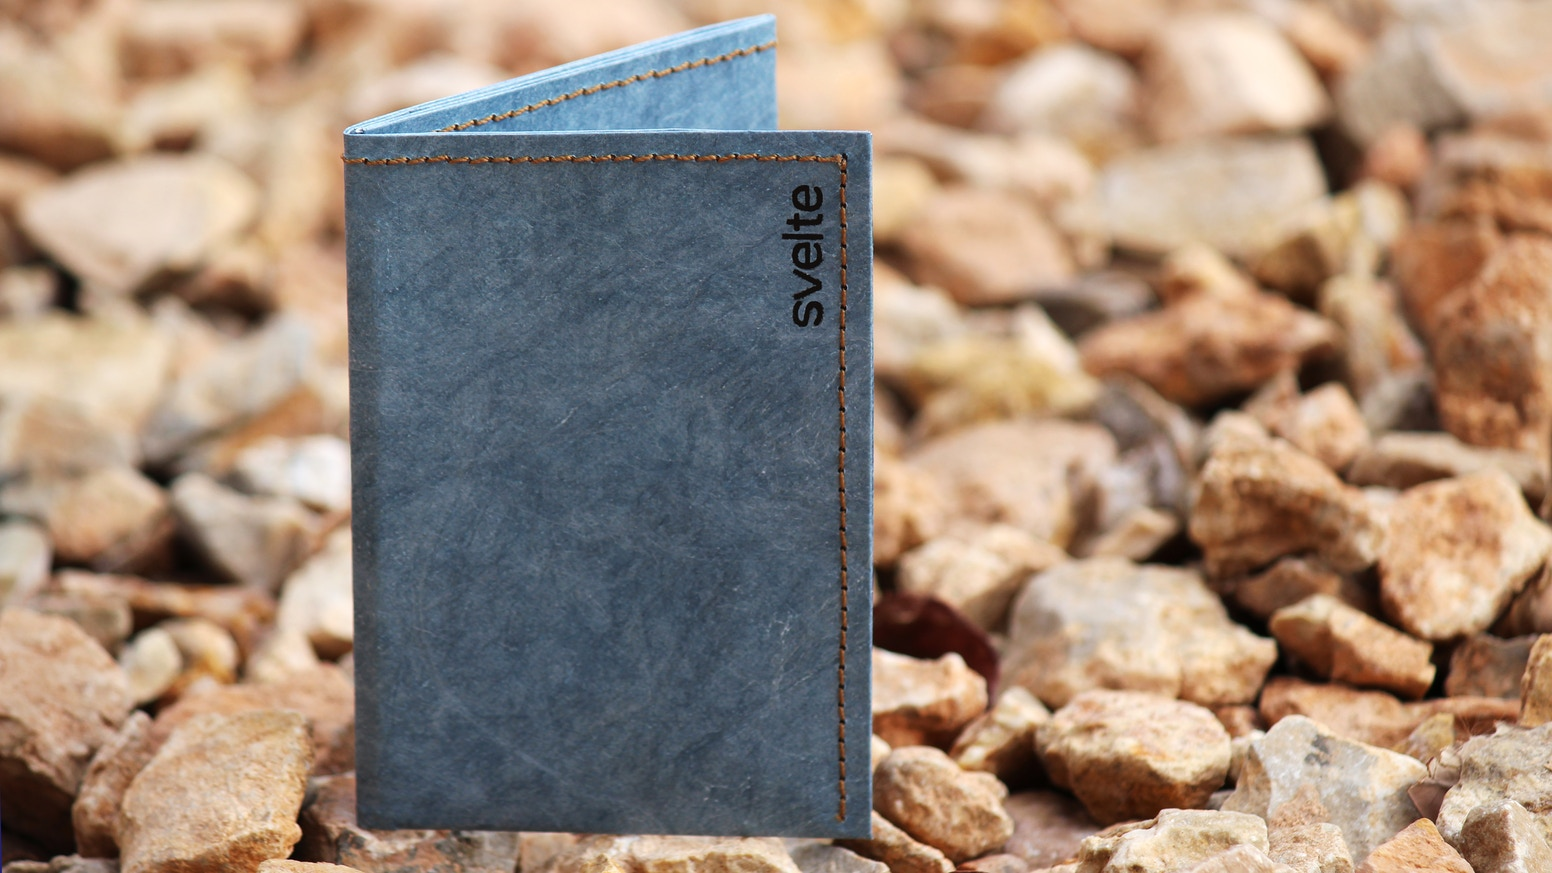 Unbelievably thin and durable, the svelte wallet is a minimalist solution for the demands of daily life